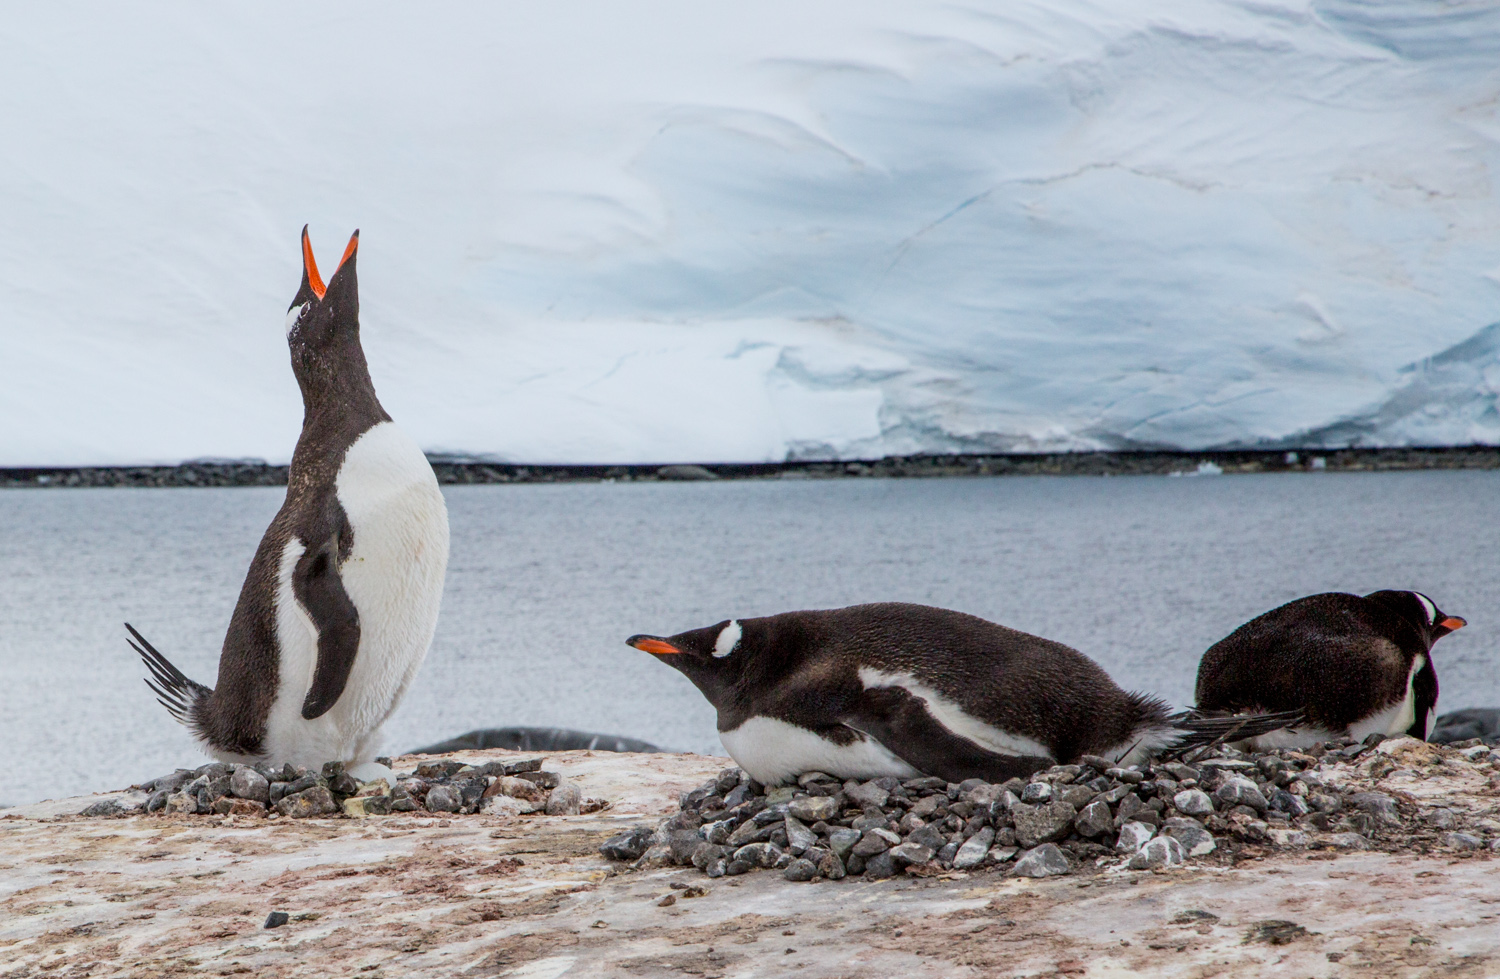 Gentoo penguins with eggs in their rock nests at Port Lockroy, Goudier Island.